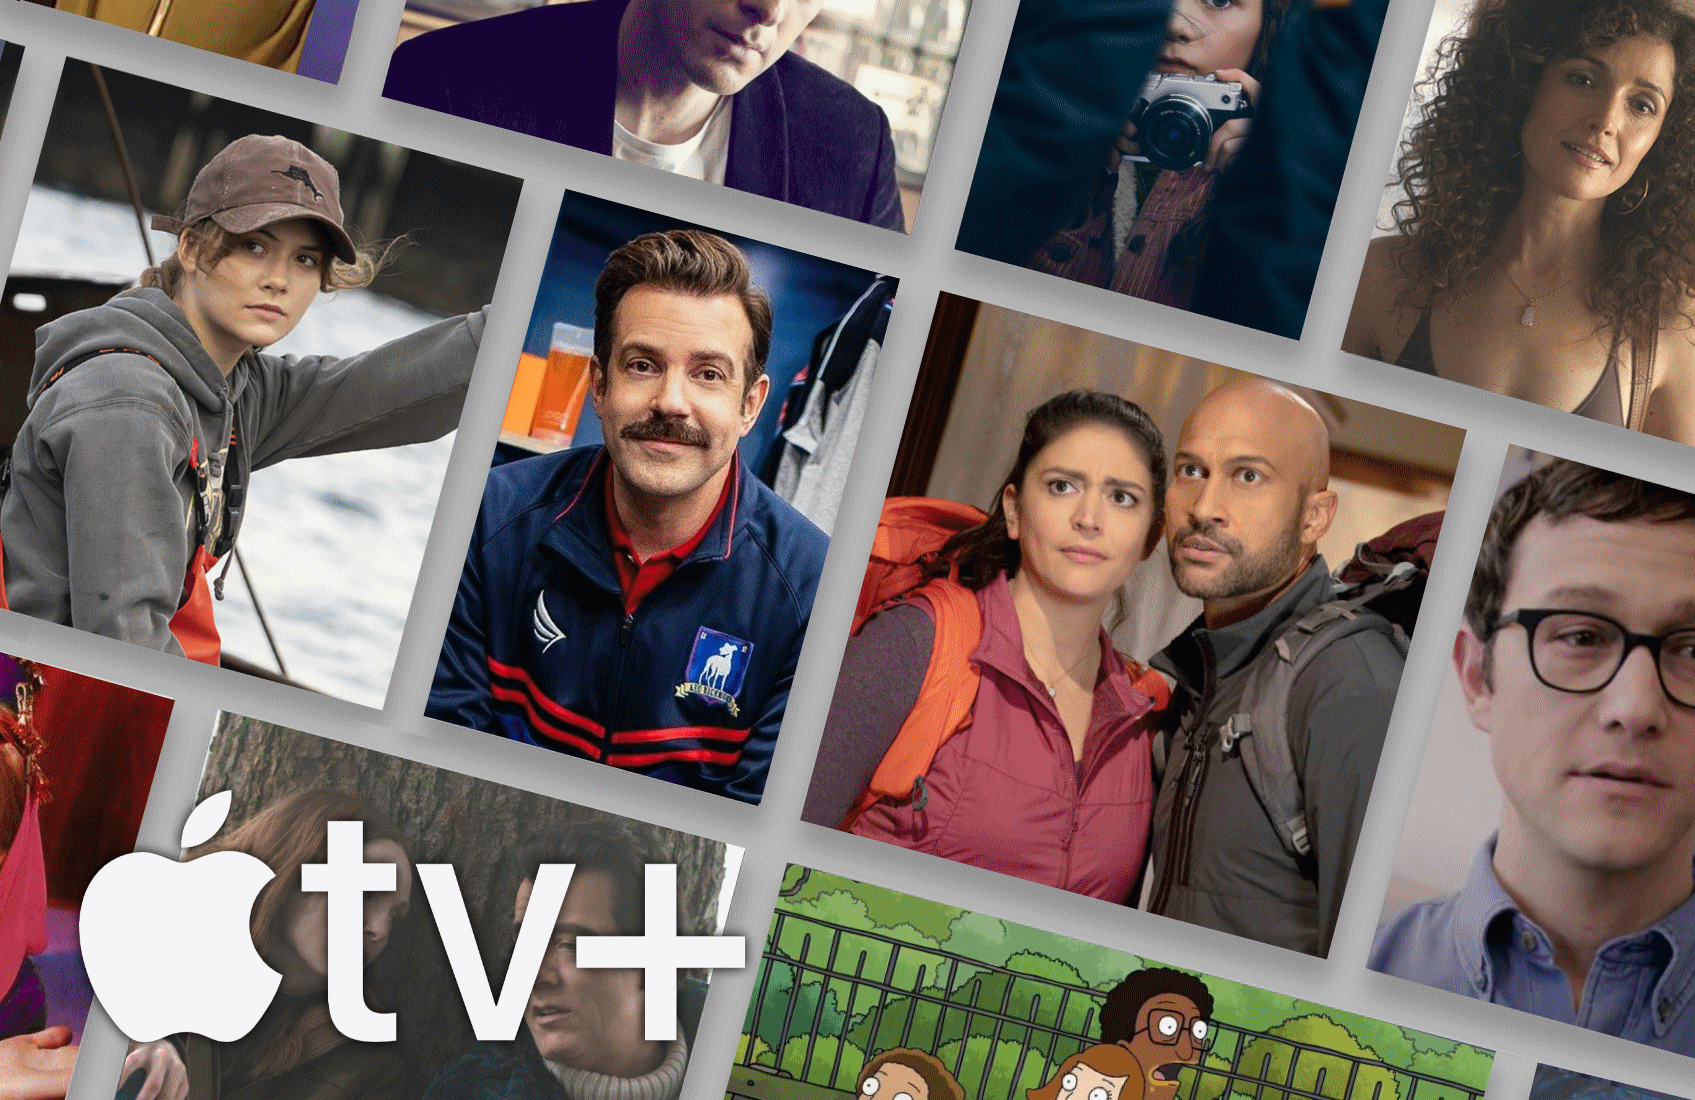 From the return of Ted Lasso to new shows from Rose Byrne, Joseph Gordon-Levitt, and Stephen King, Apple TV+ is poised for a break out summer.